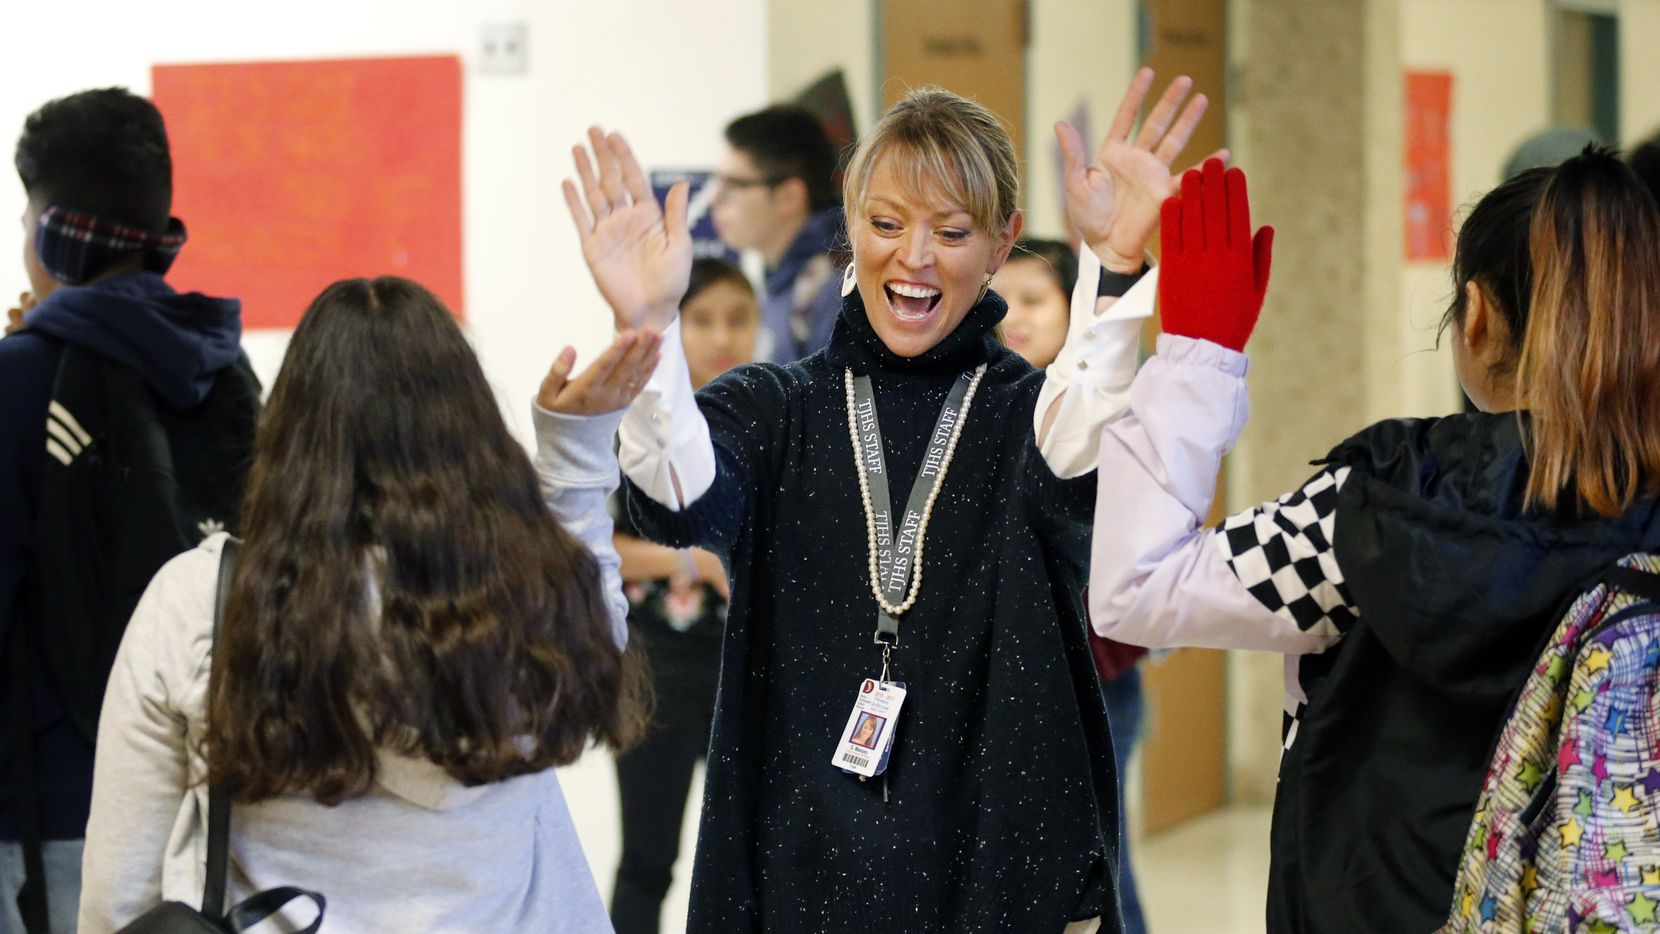 Thomas Jefferson High School principal Sandi Massey greeted her students with high-fives as they arrive at their new school, Thomas A. Edison Middle Learning Center in West Dallas, last October.